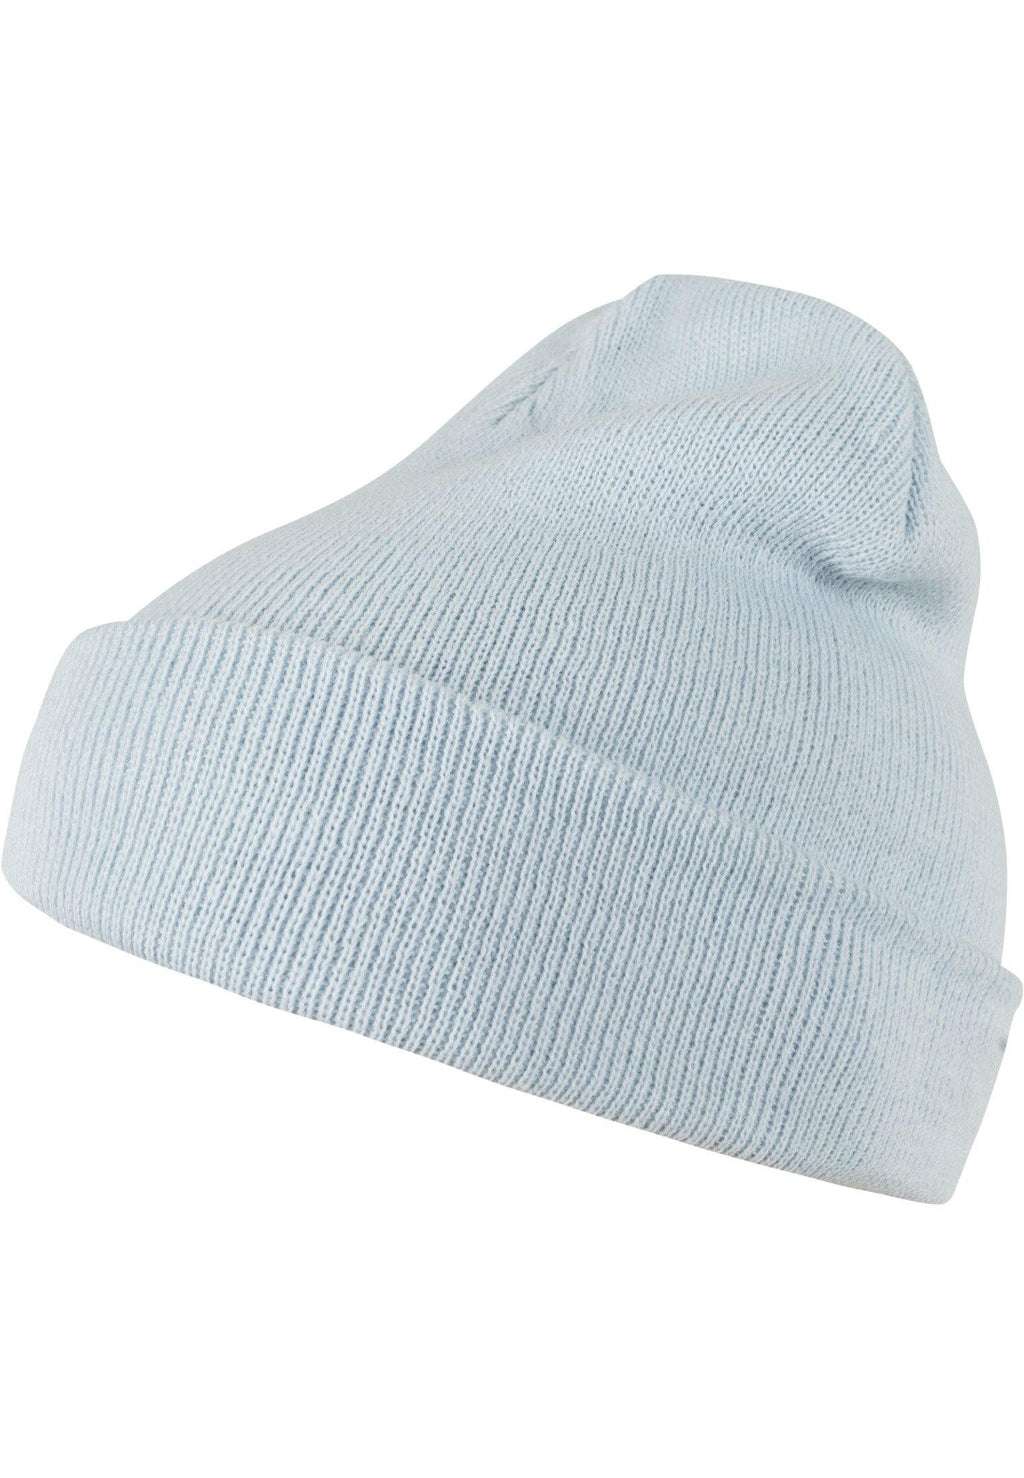 Beanie Pastel Basic Flap (5 colors) - DadiTude